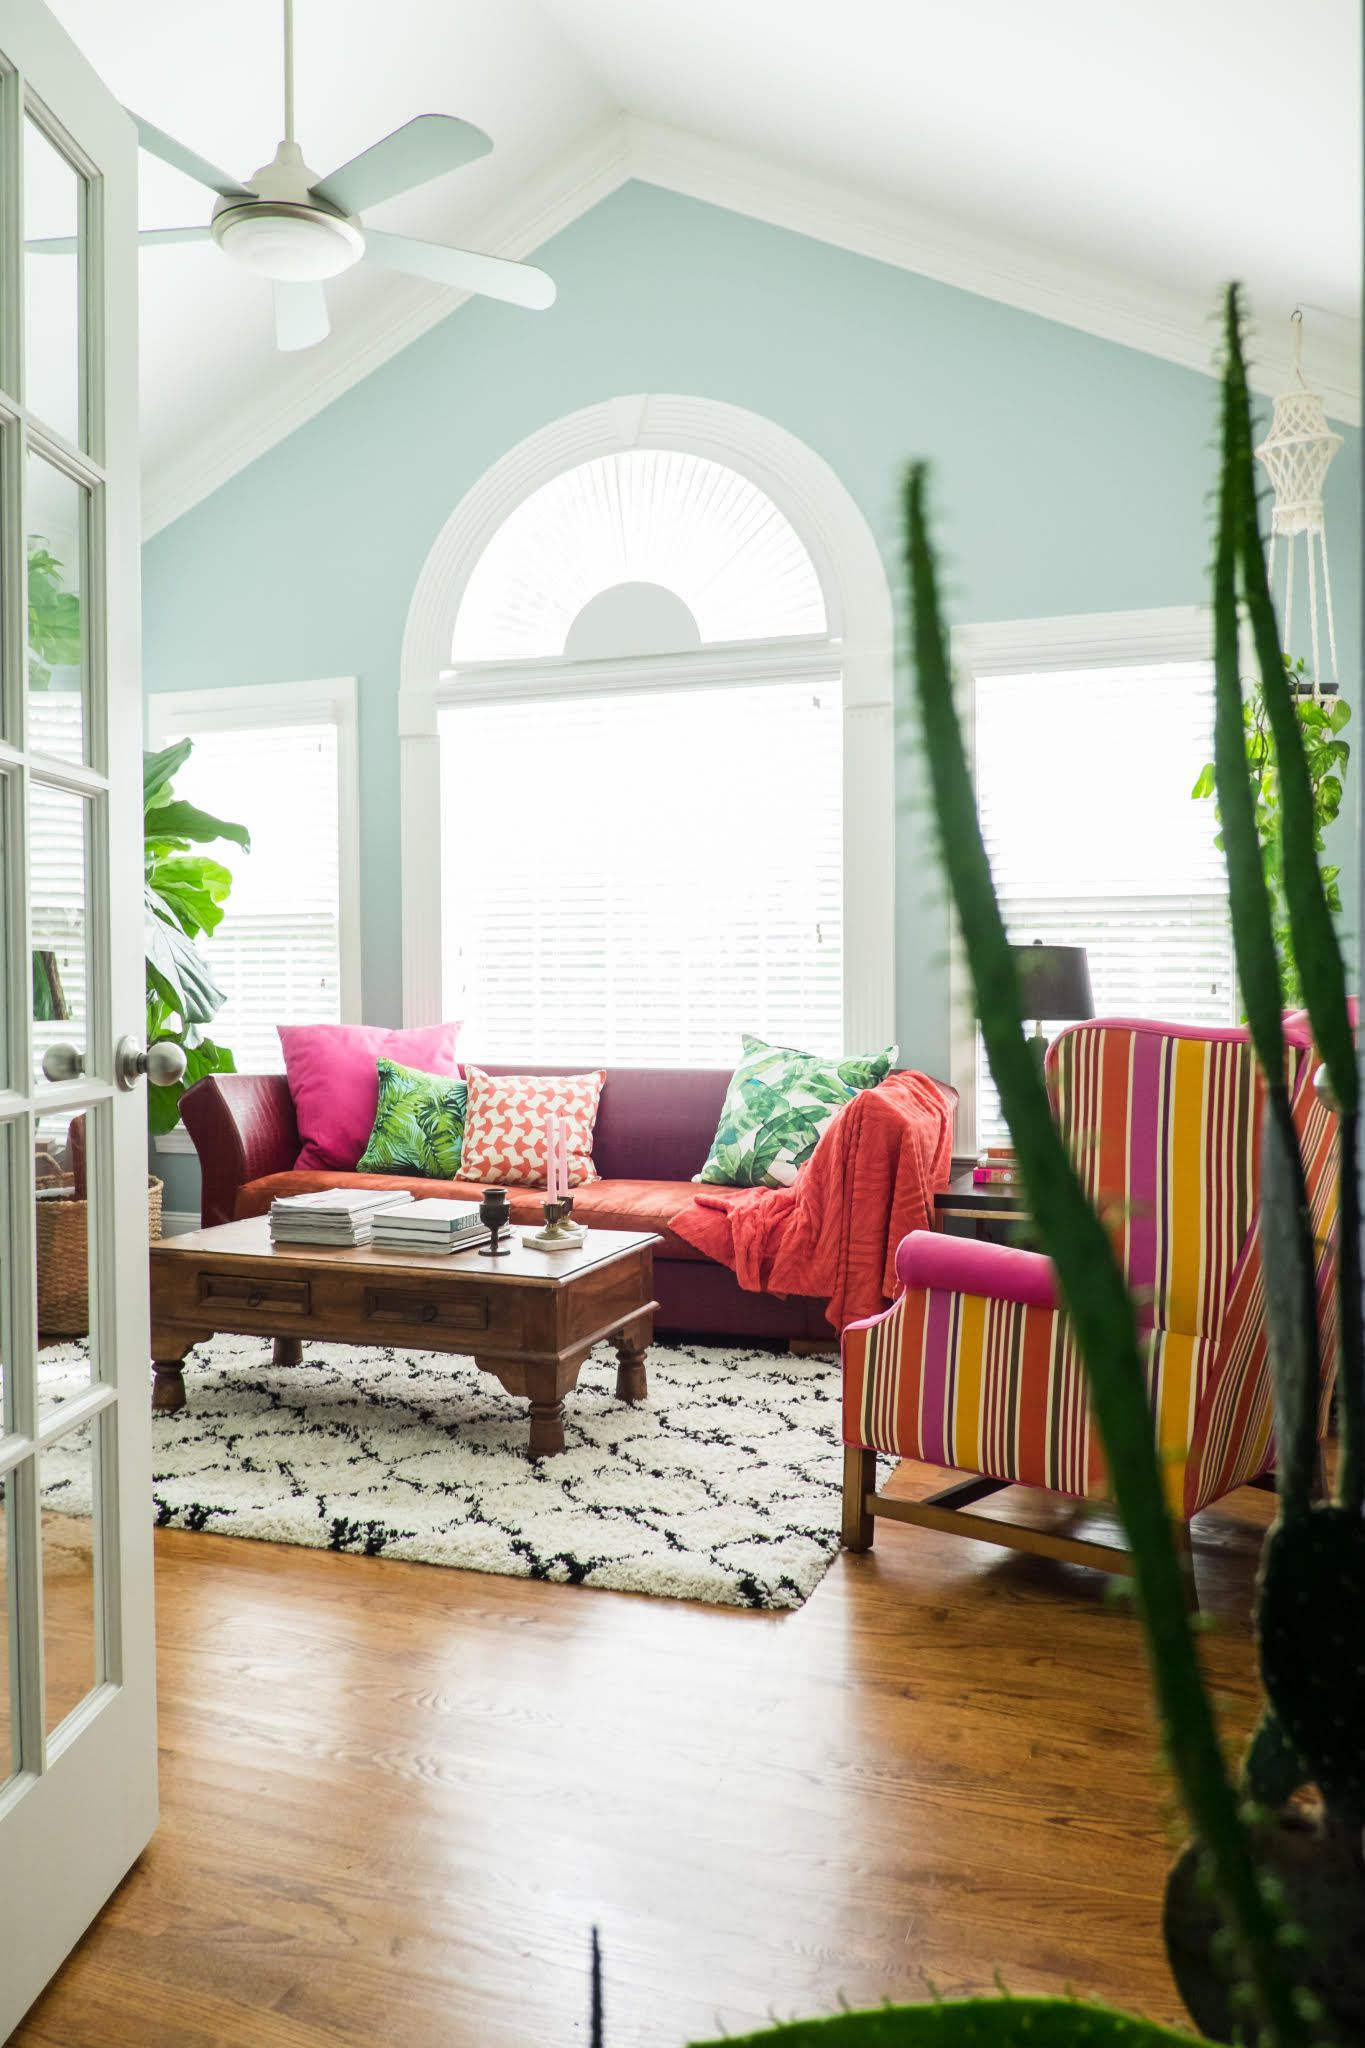 5 designer tips for decorating with color with images on living room color inspiration id=81919